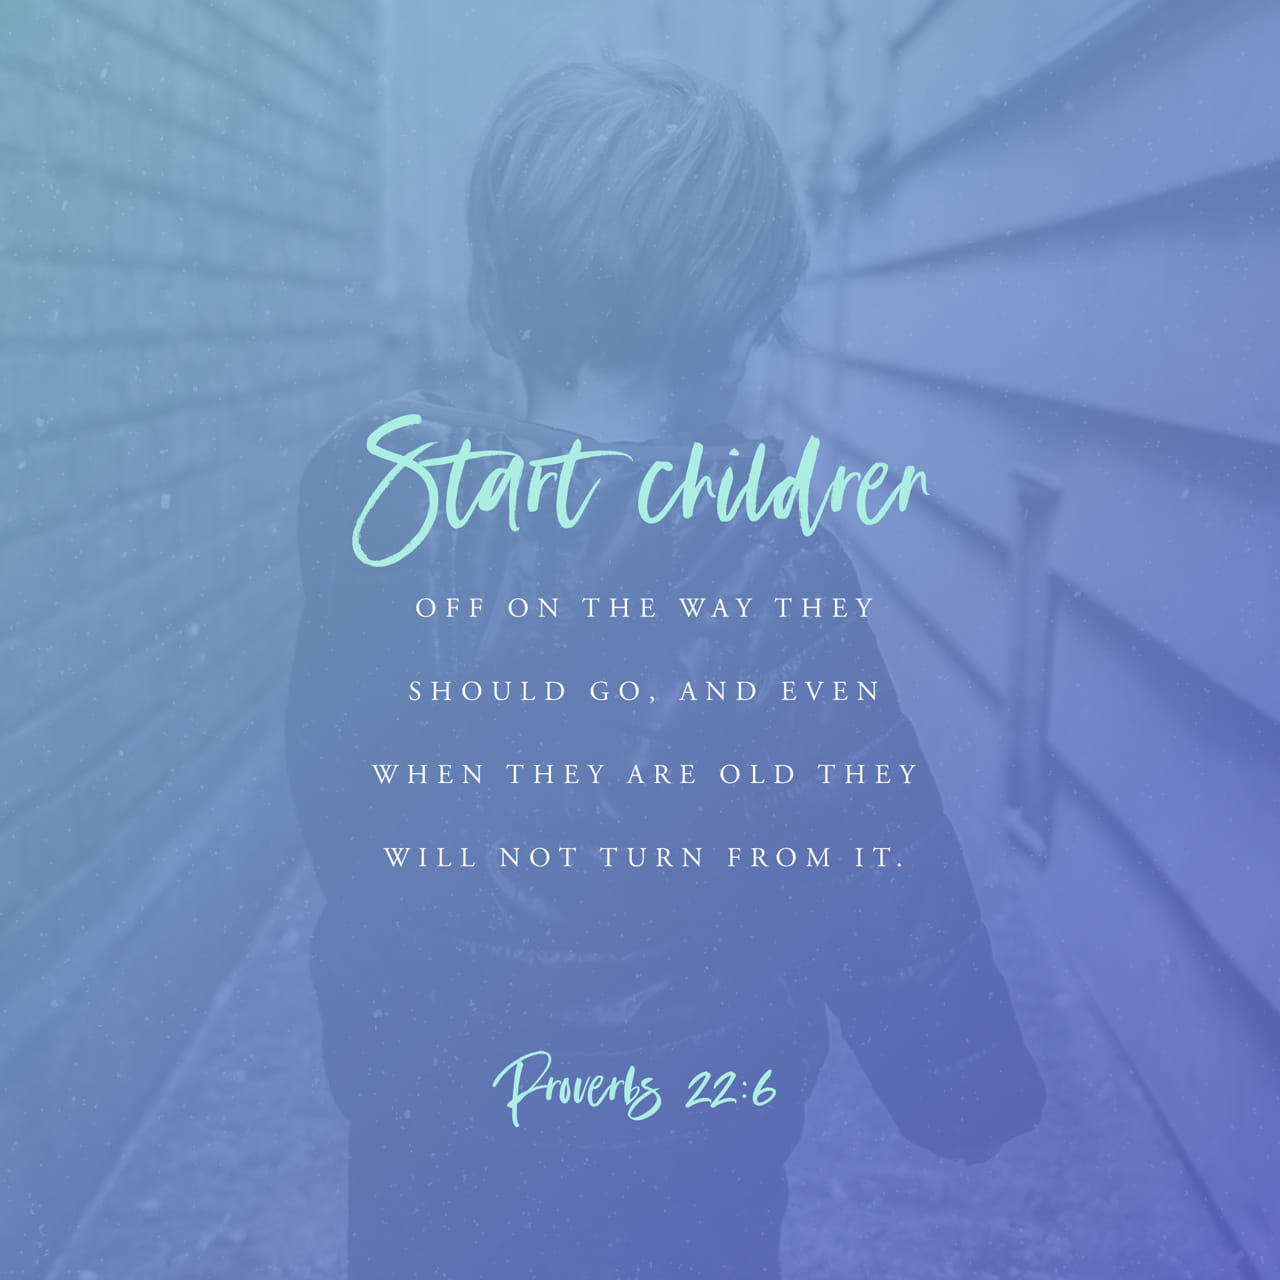 Proverbs 22:6 Train up a child in the way he should go: and when he is old, he will not depart from it. | King James Version (KJV)